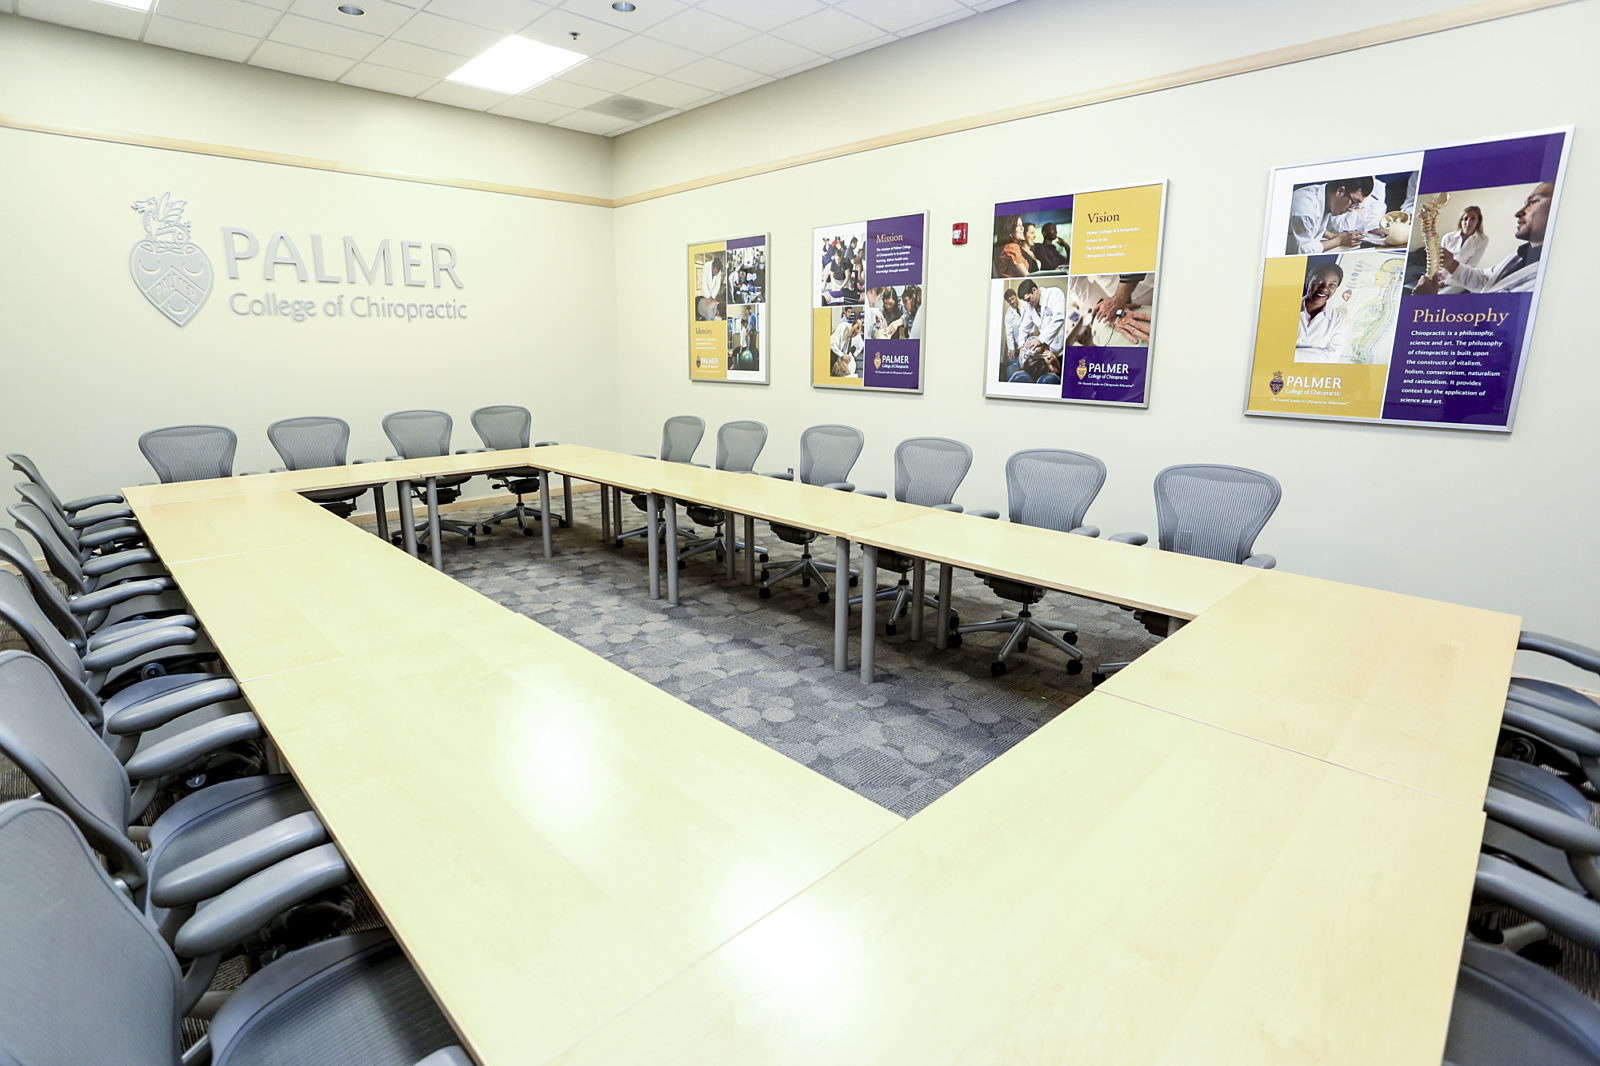 Palmer College of Chiropractic, Pigott, Herman Miller Furniture, Education, College Campus, Meeting Space, Conference Room, Aeron Chairs